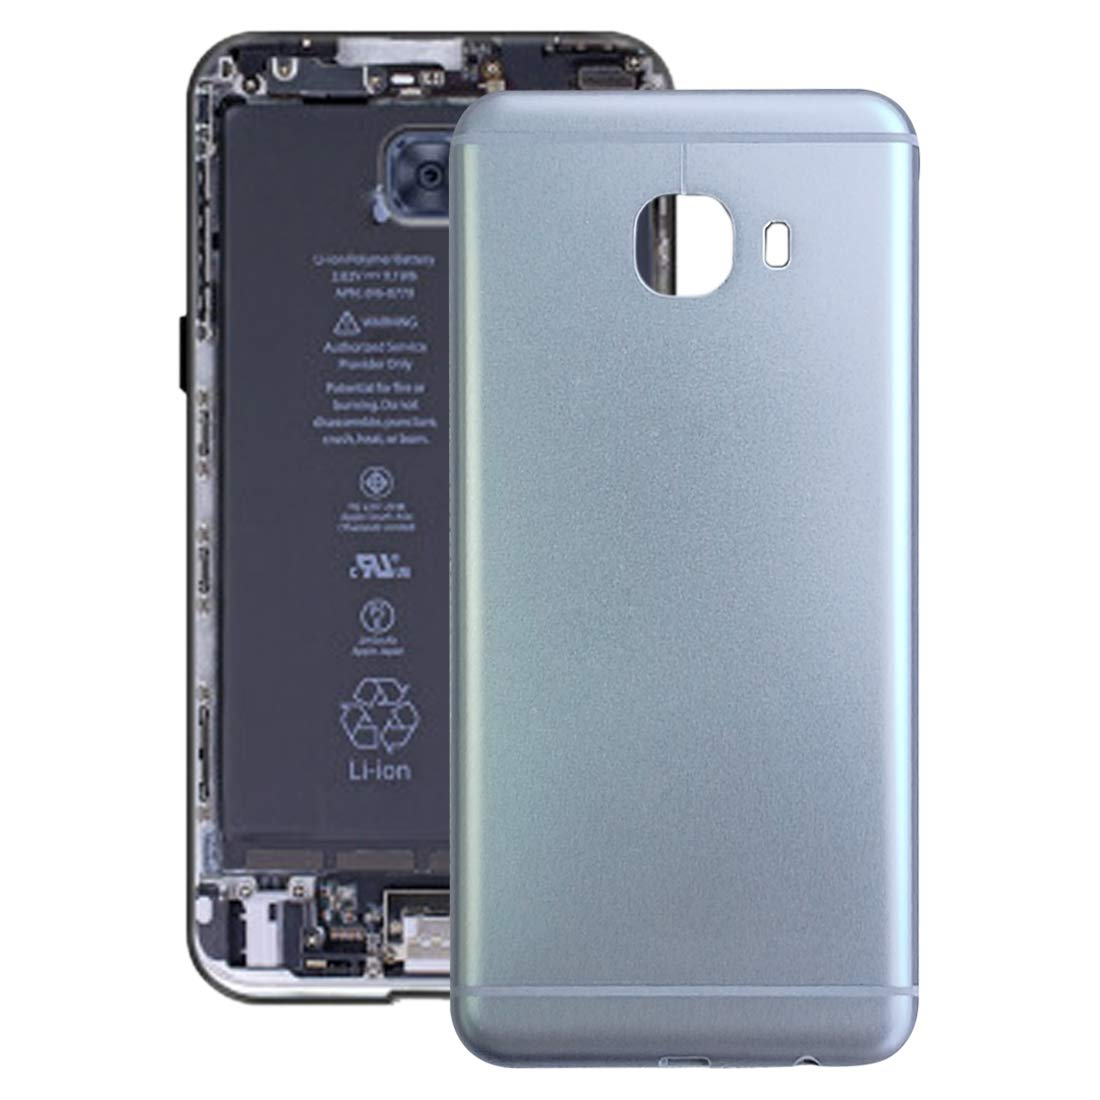 YXC Compatible Back Cover Back Battery Door Back Cover for Galaxy C5(Grey) Smartphone Replacement Parts OEM Original Replacement Parts Accessories (Color : Grey) by YXC